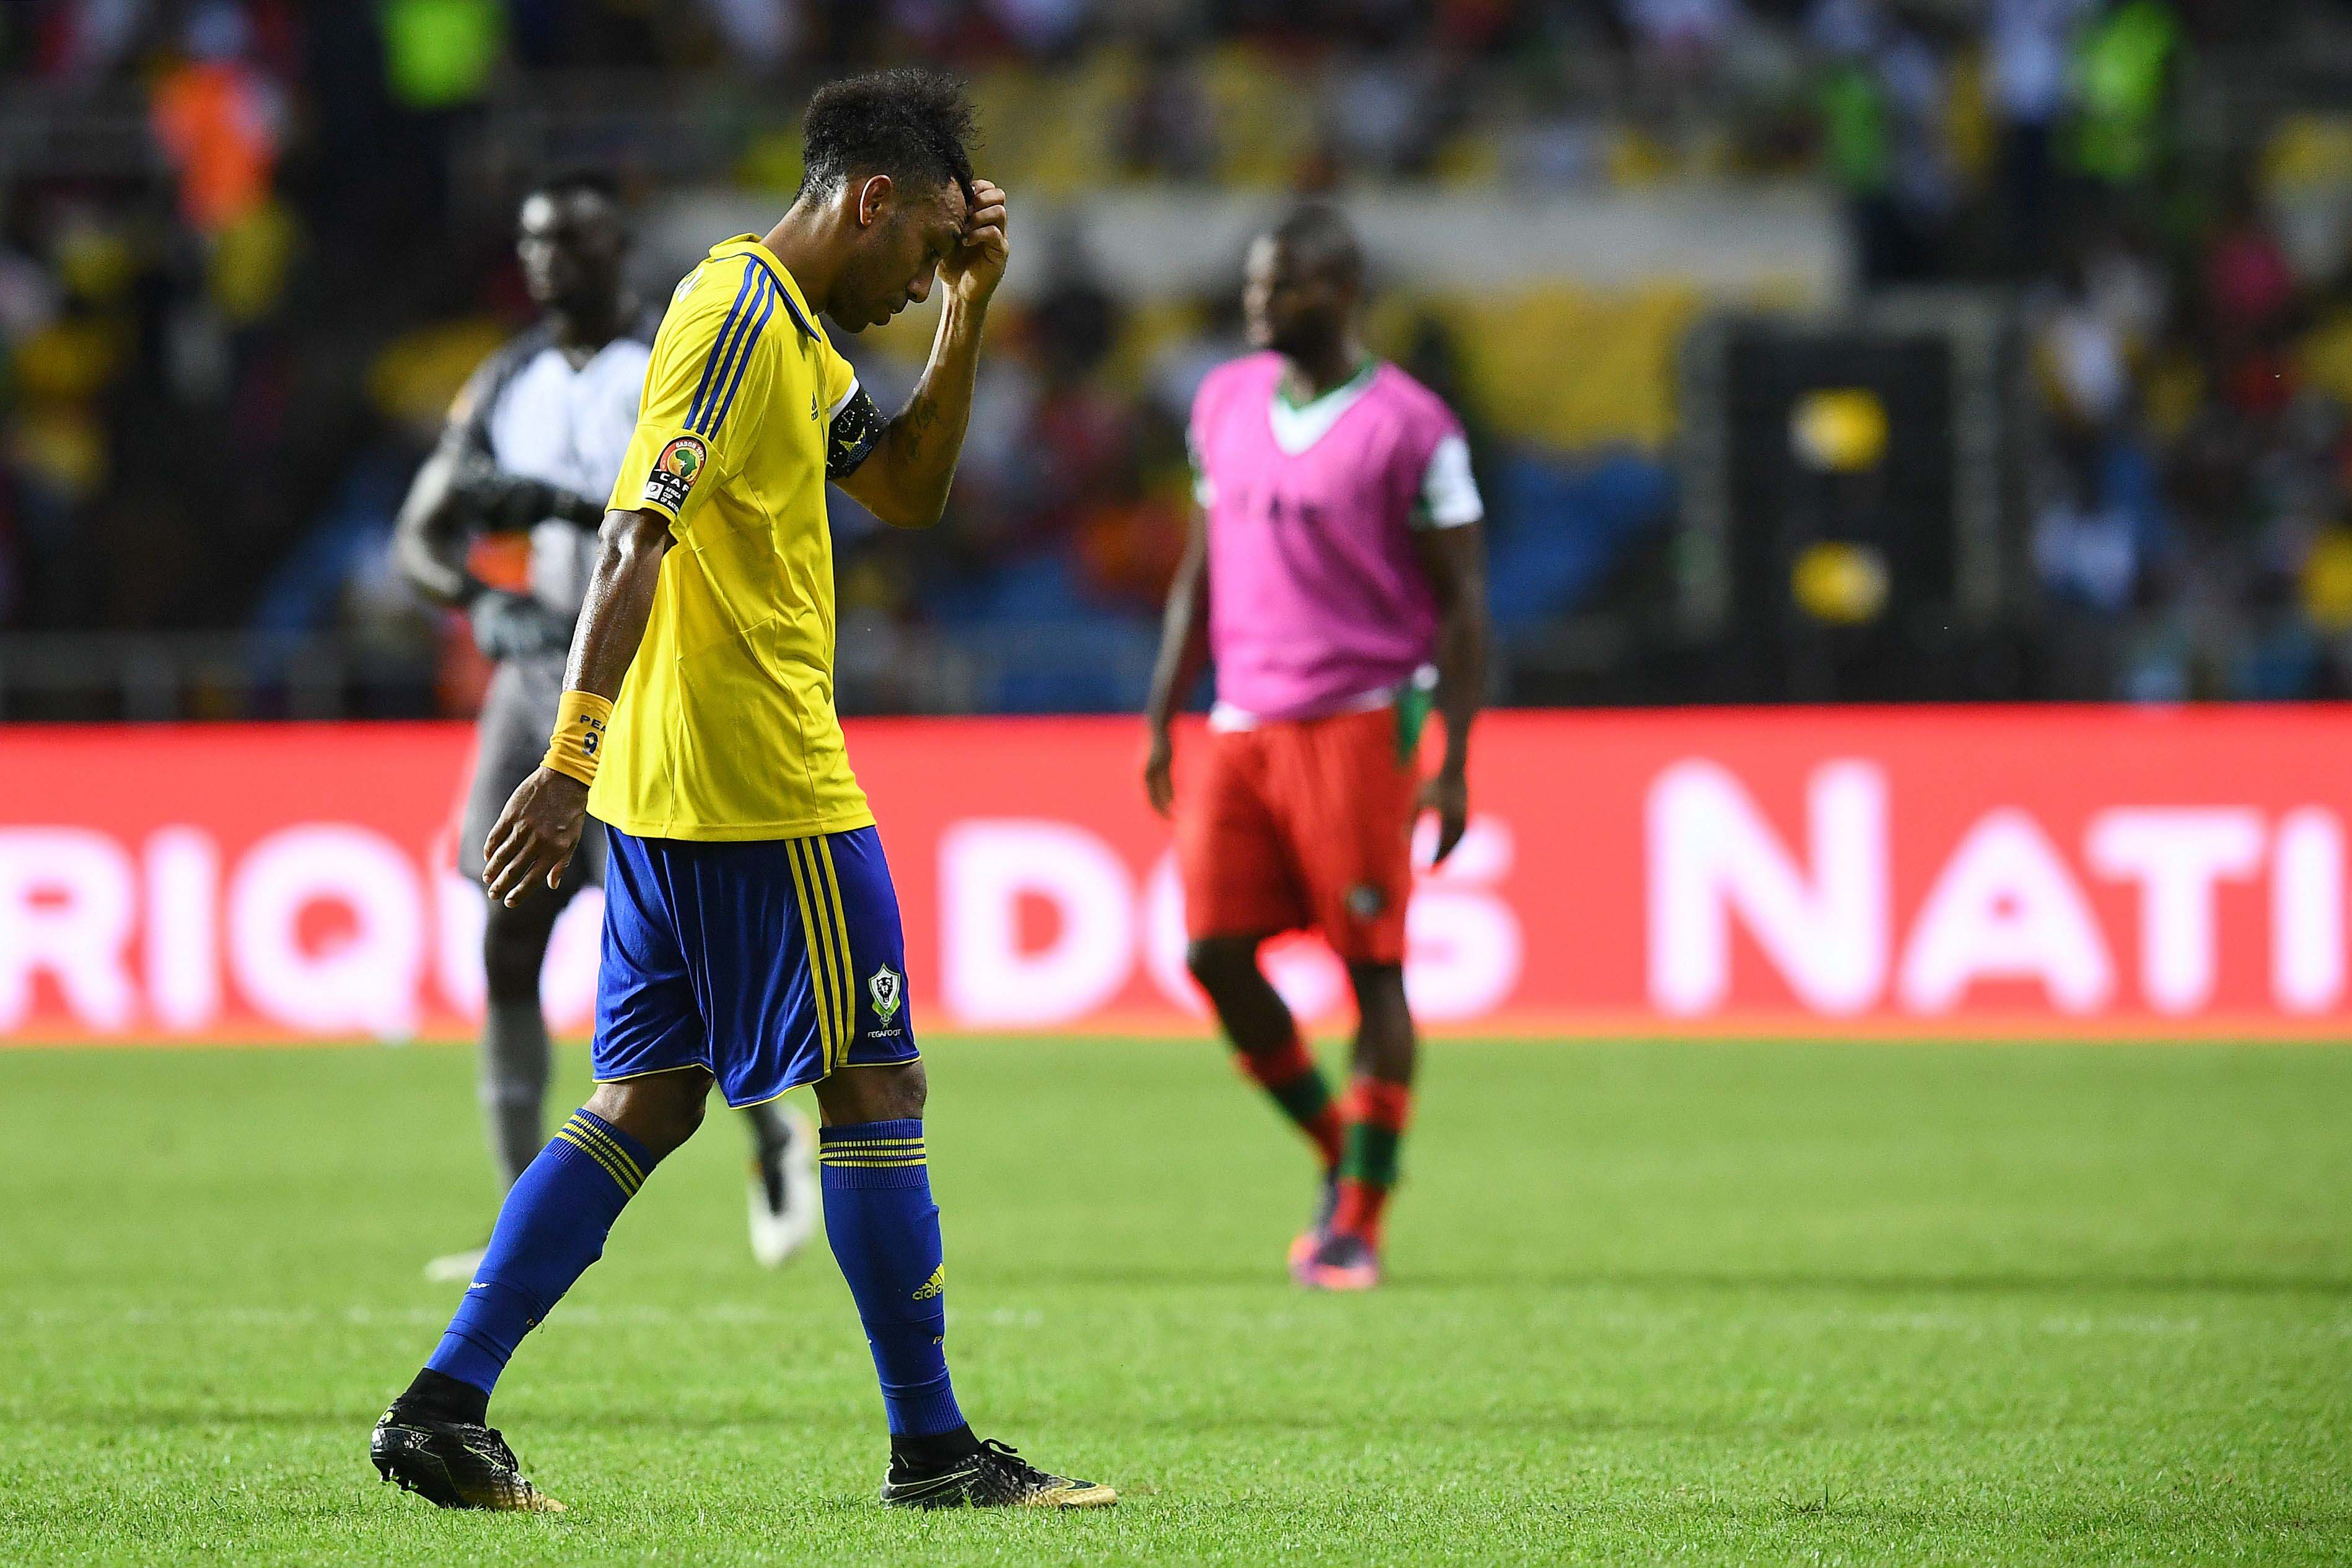 gabon denied opening day win in african cup of nations